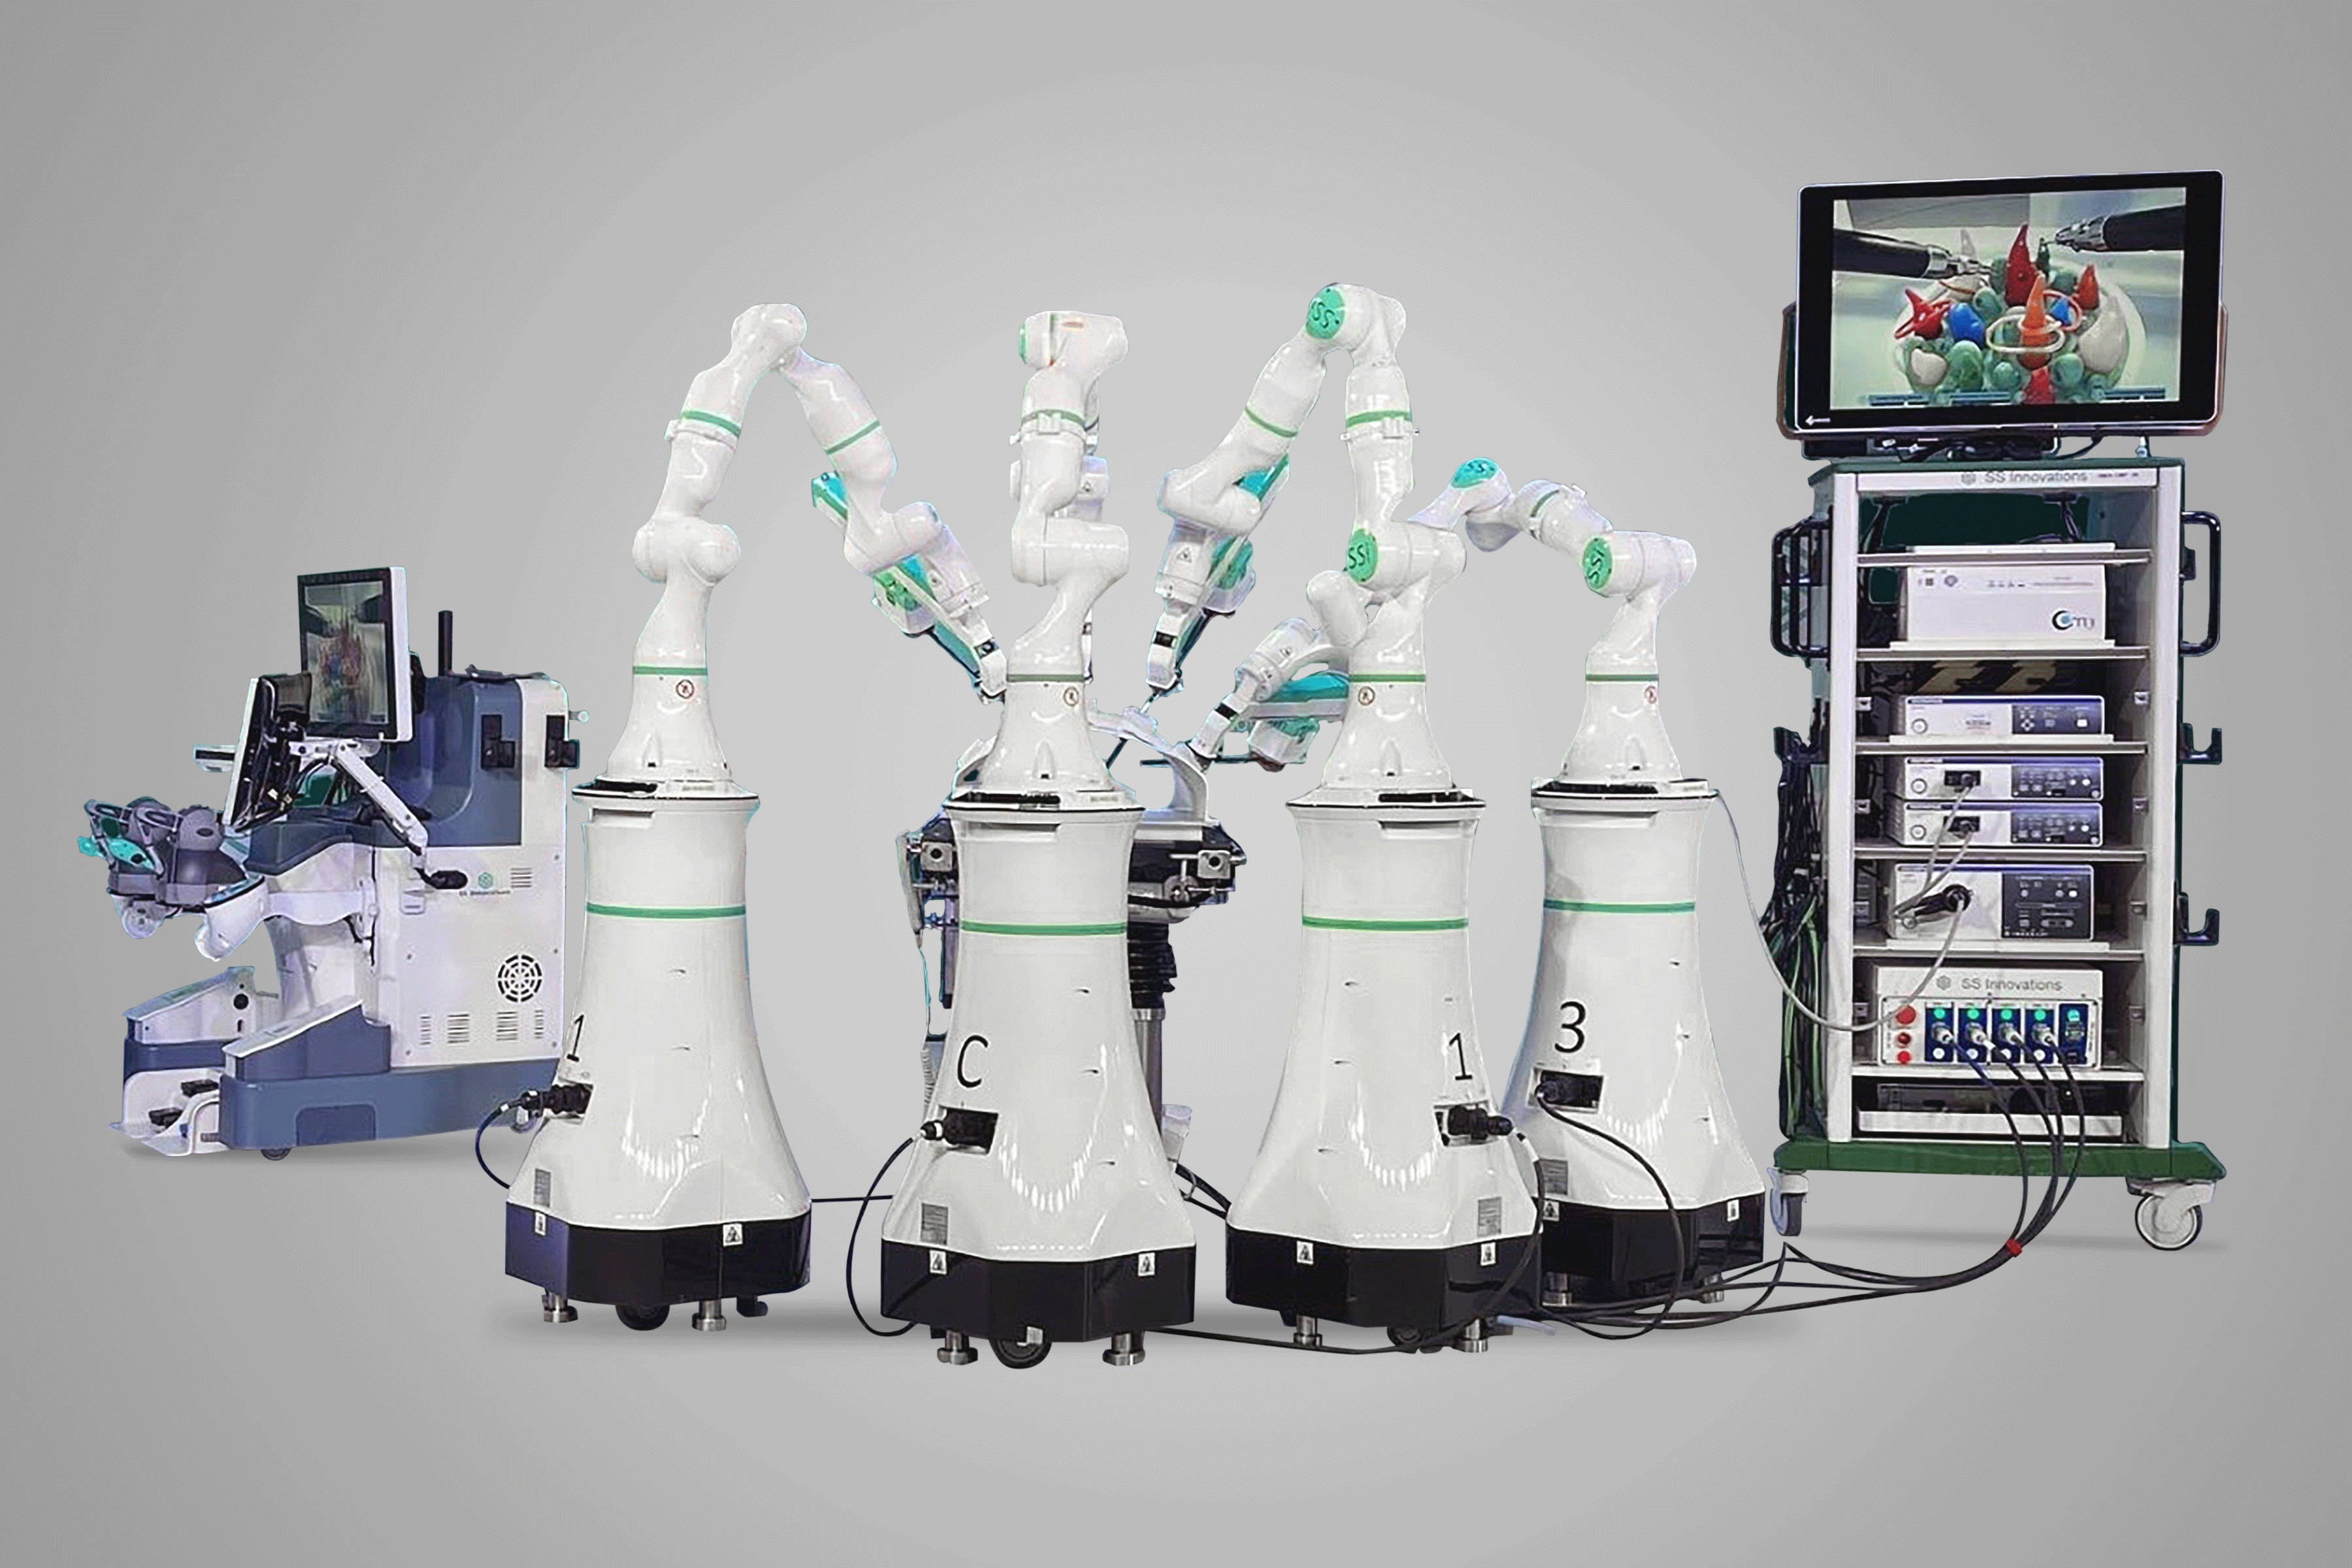 The indigenously developed Mantra robotic system can assist human doctors in complex surgeries, for a fraction of the price of similar imported tech. (SSI Mantra)